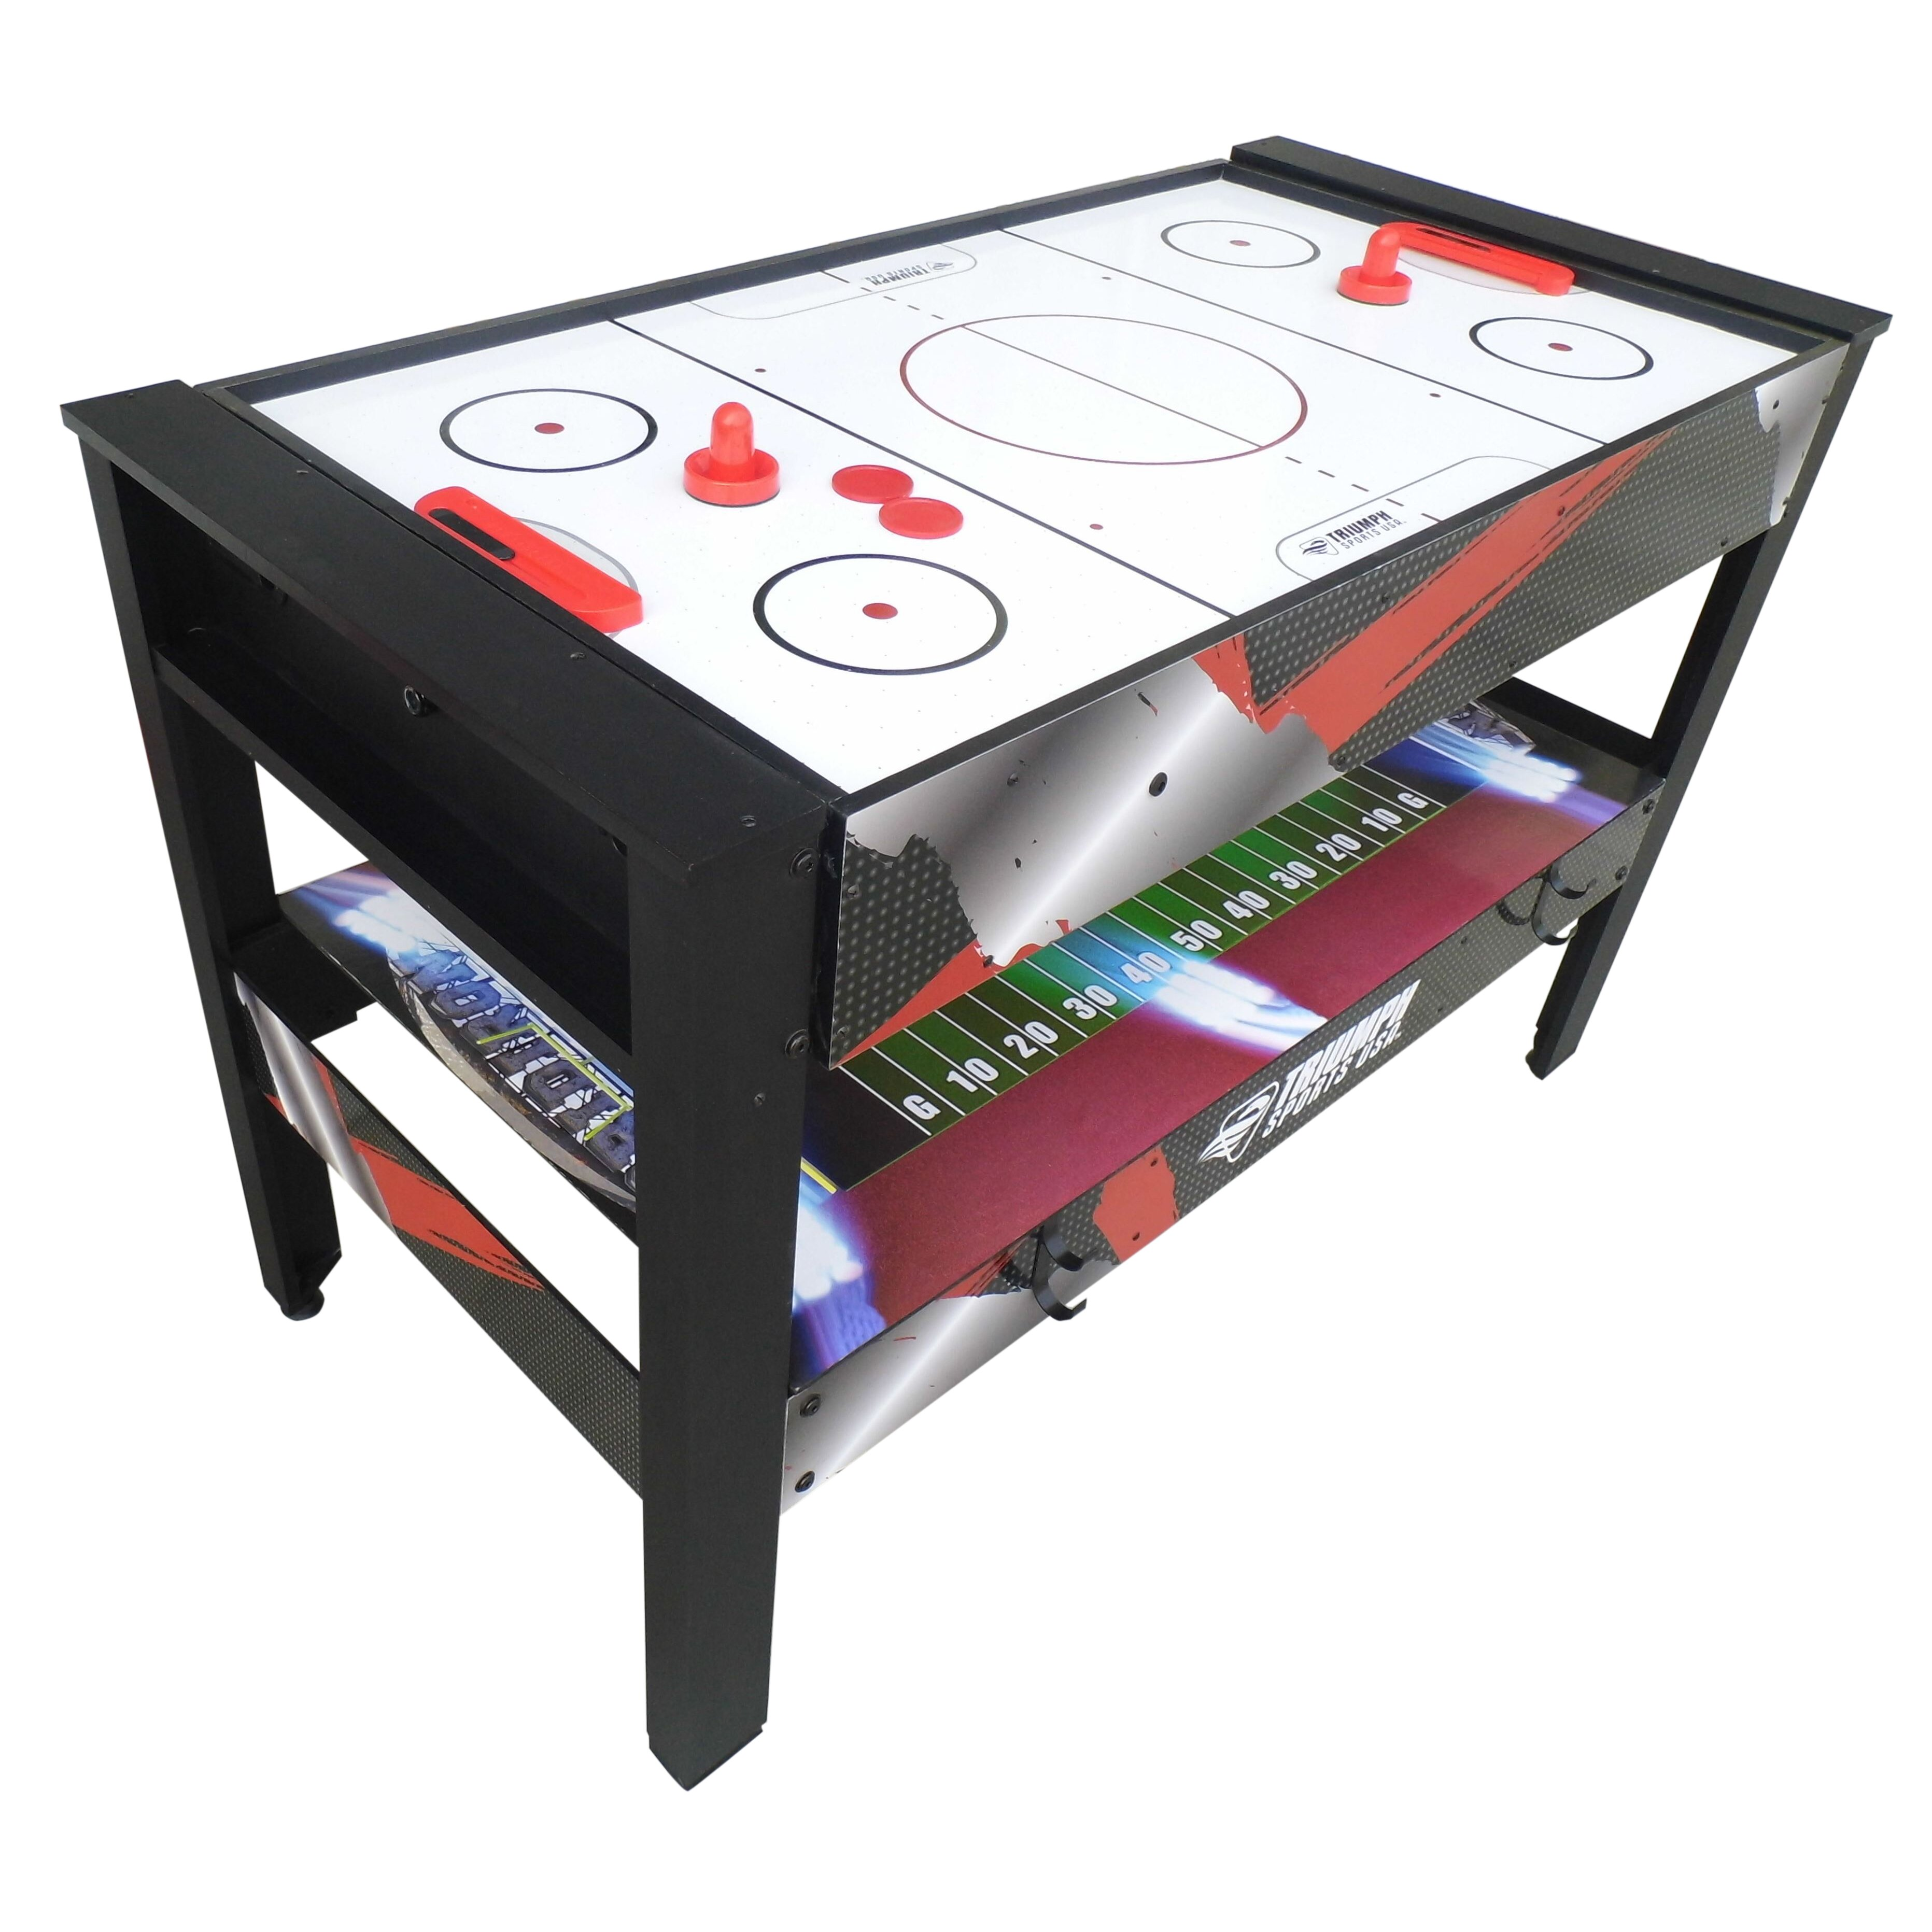 3 in 1 ping pong pool air hockey table - Triumph Sports Usa 4 In 1 4 Rotating Game Table